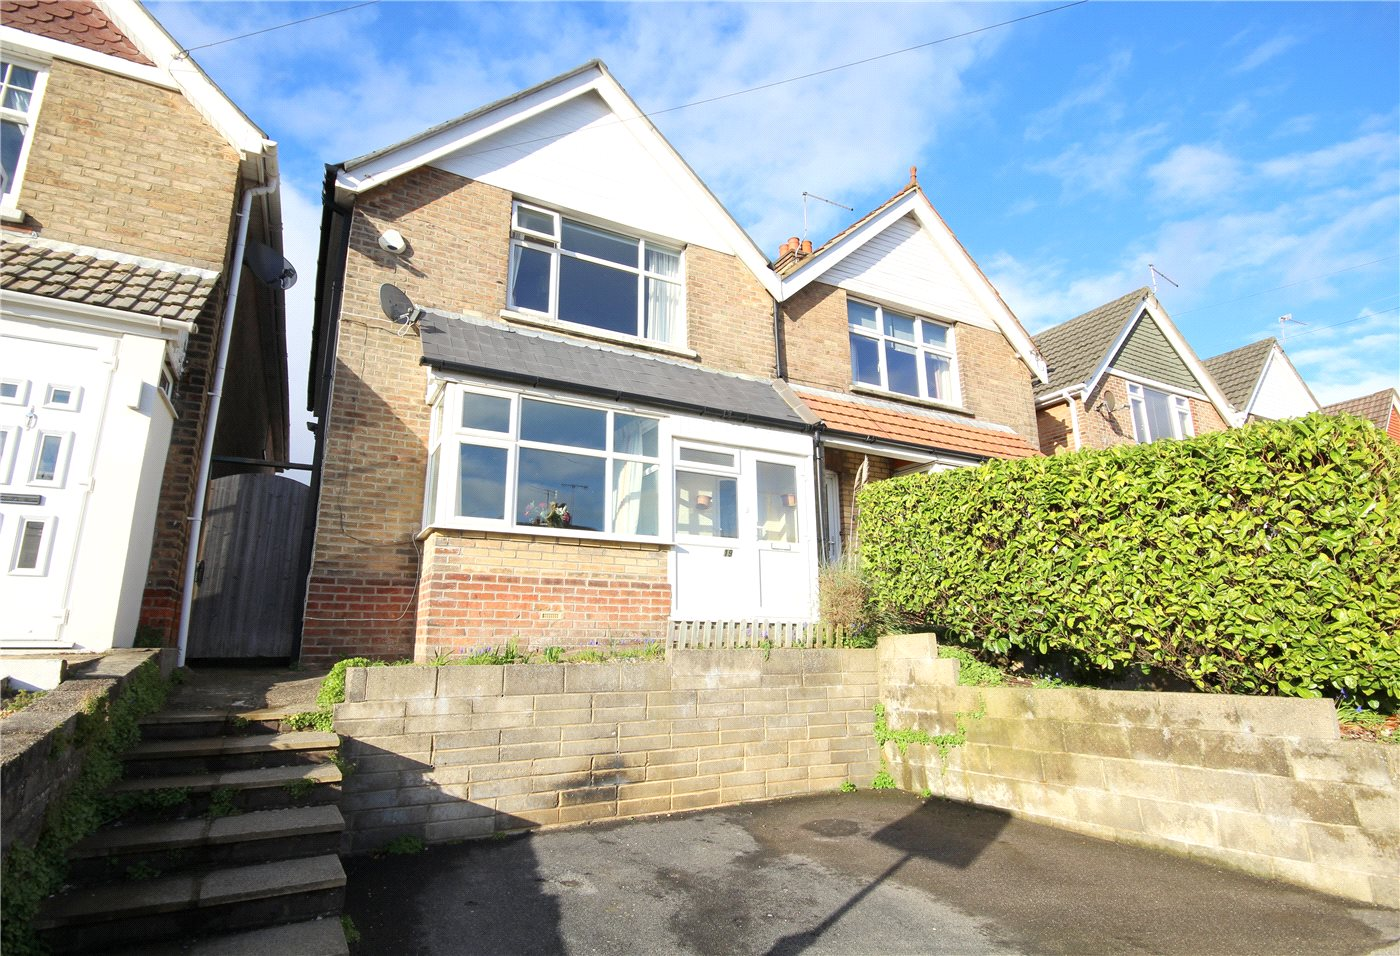 3 Bedrooms Semi Detached House for sale in Alexandra Road, Lower Parkstone, Poole, Dorset, BH14